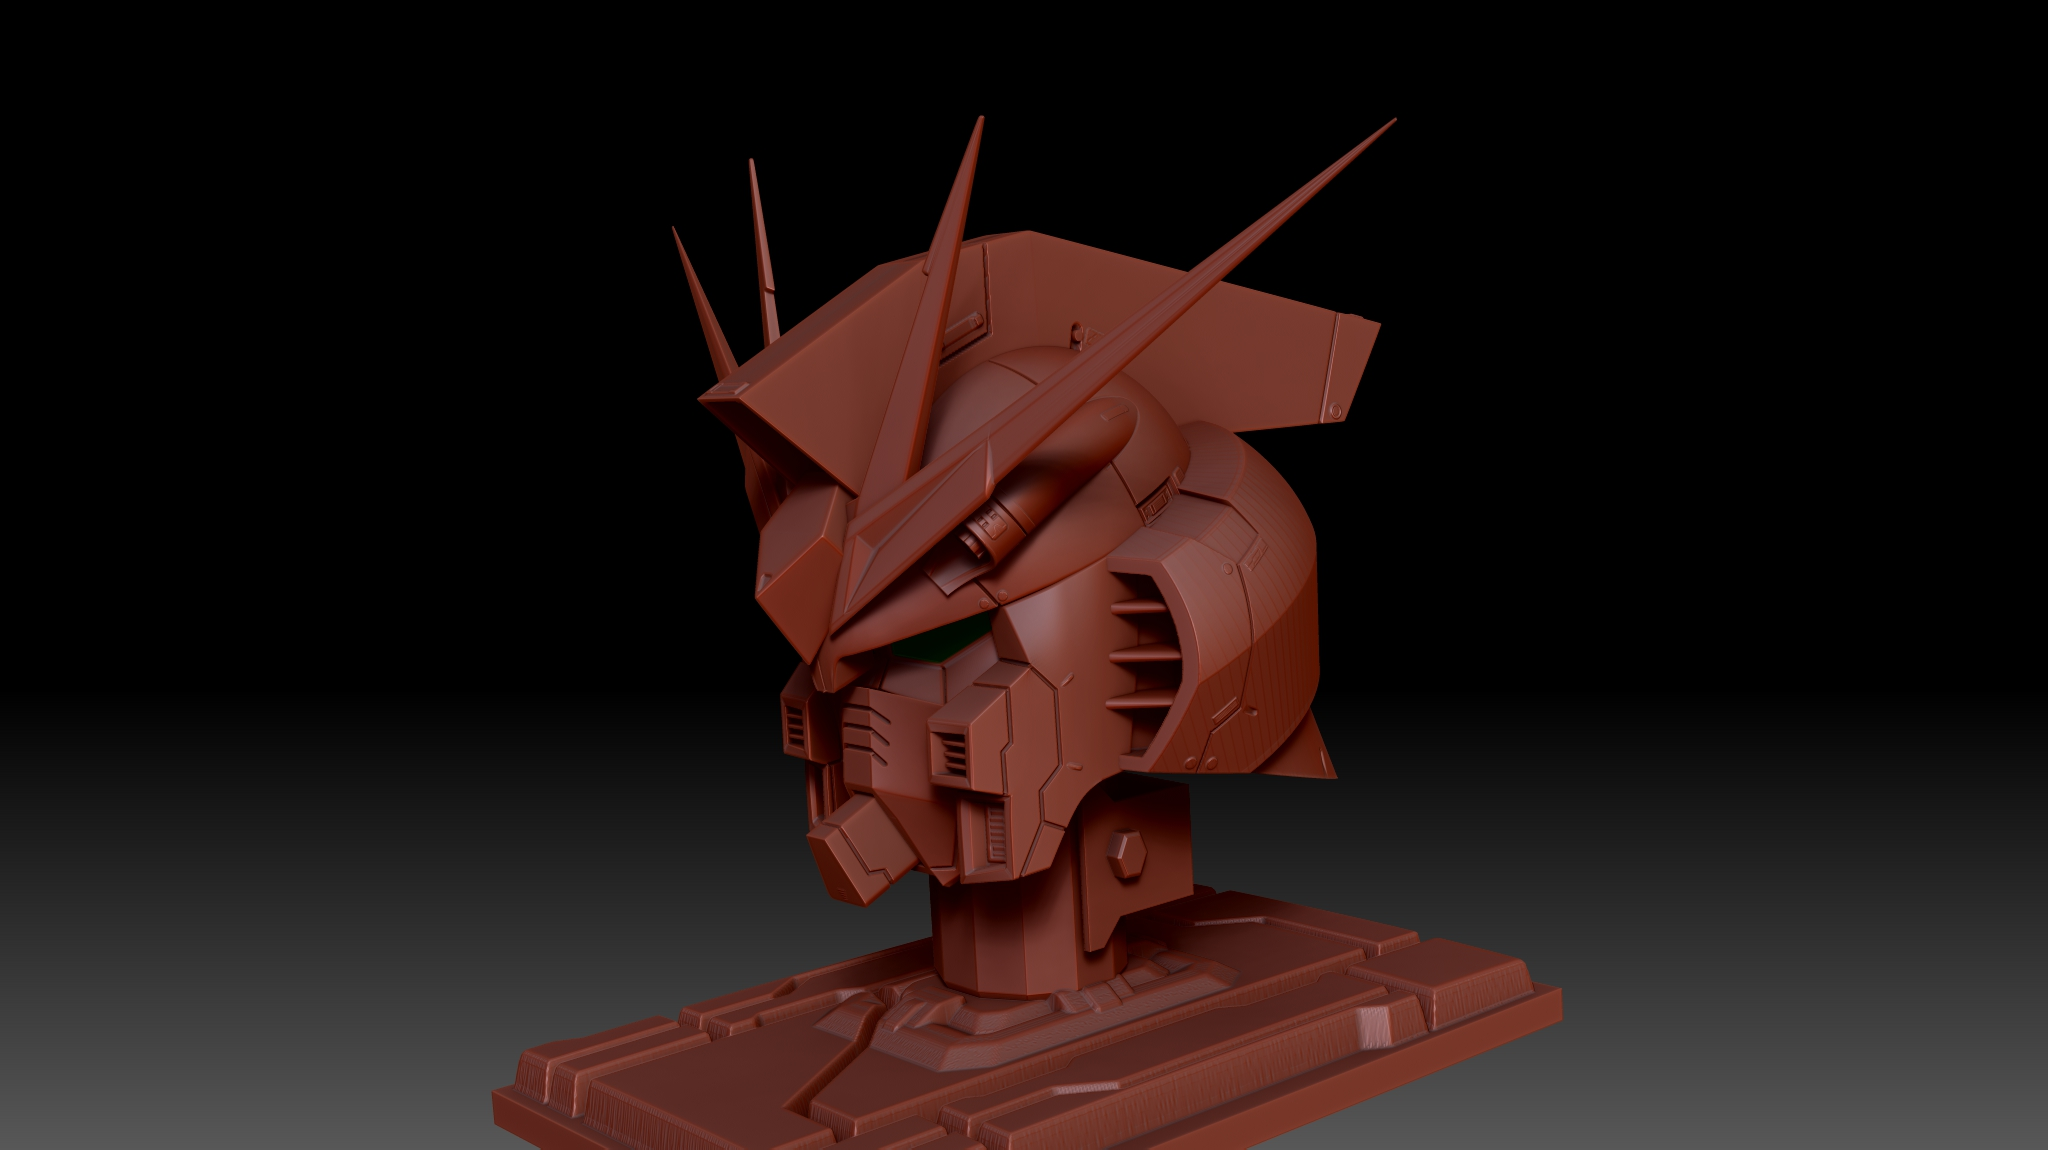 0_1485167153643_ZBrush Document3.jpg